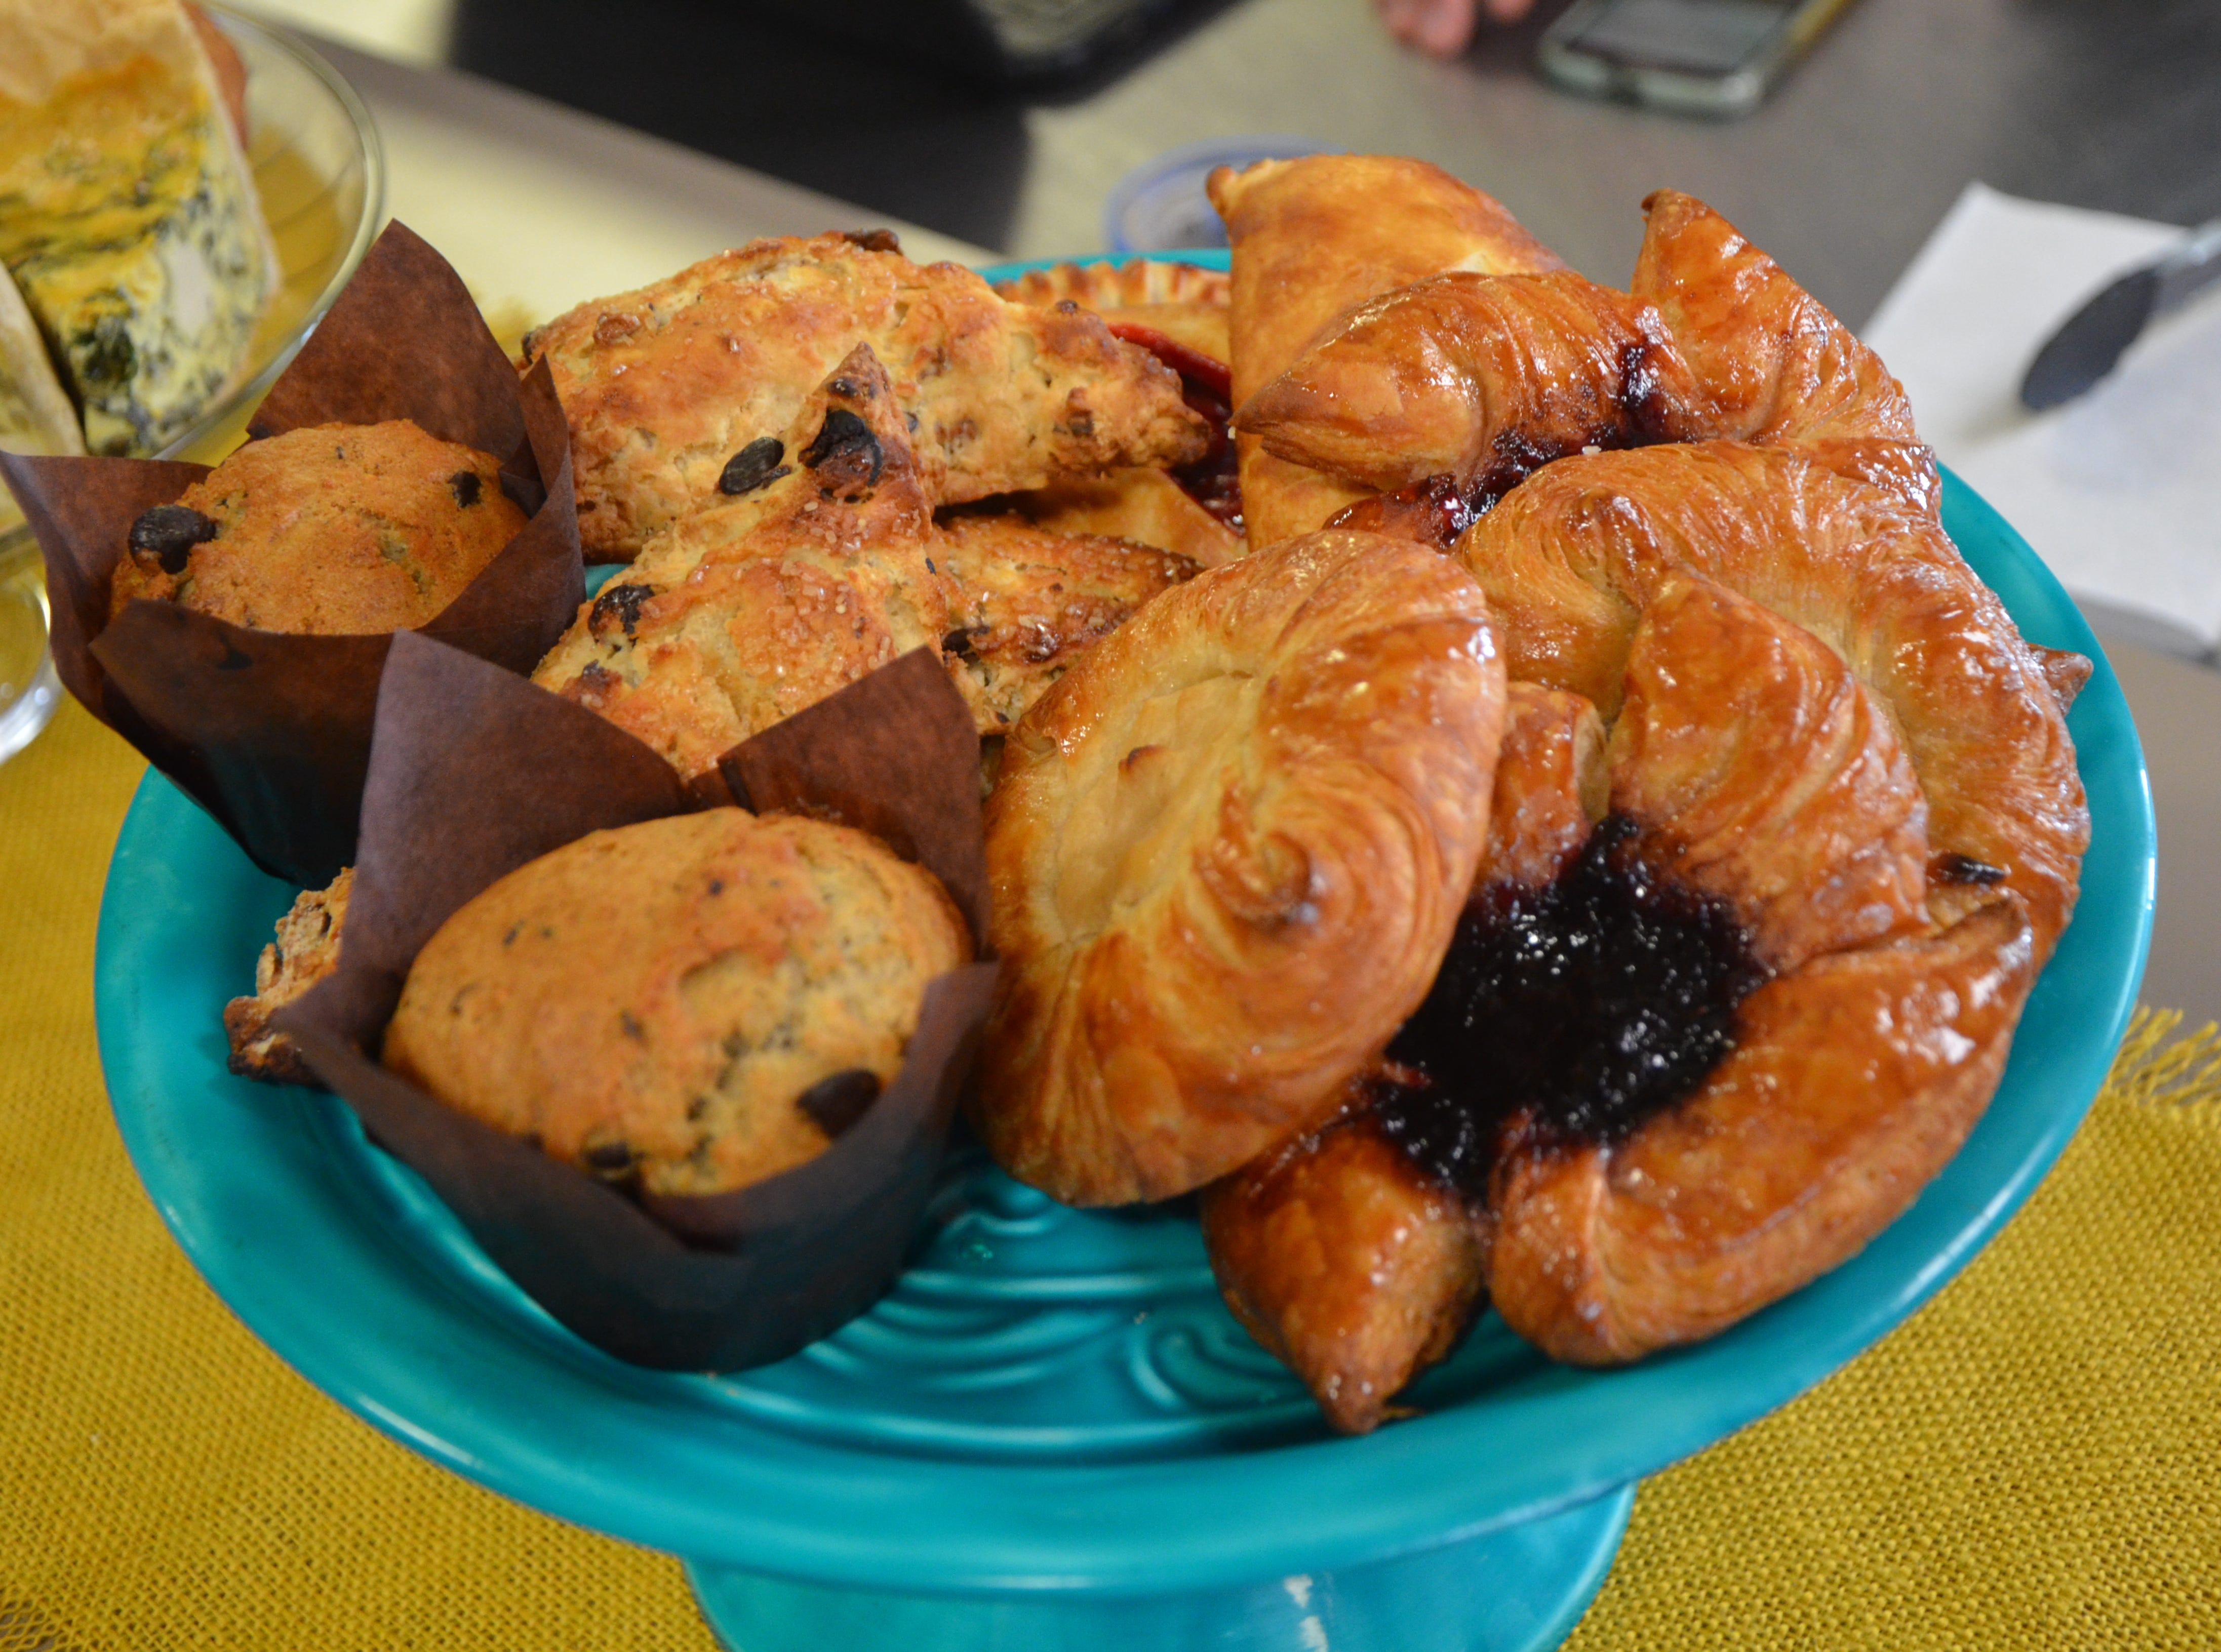 Among the sweet vegan pastries customers can find at the Pop-up Patisserie at Sprout Grocery + Kitchen, 503 Military Road, are cream cheese or blackberry danishes, walnut scones, cherry hand pies and banana chocolate chip muffins.